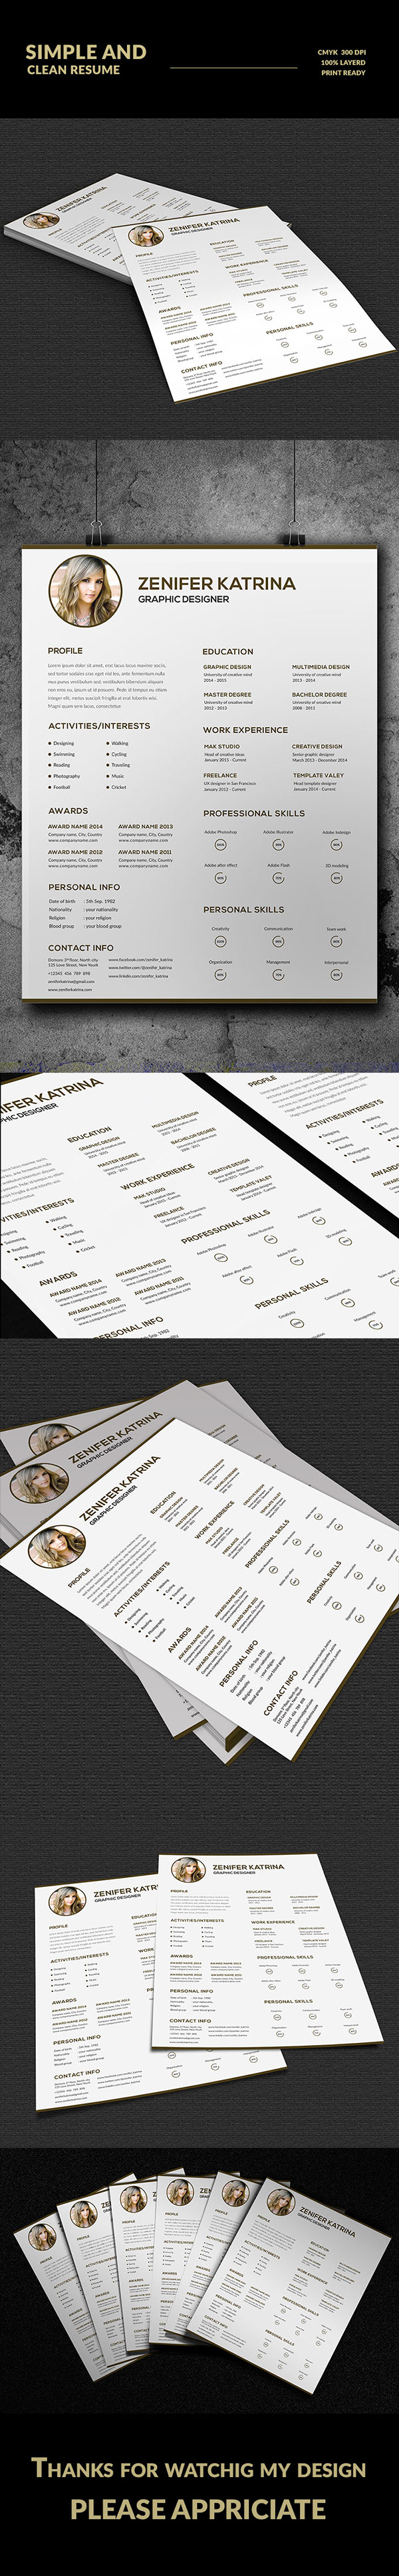 how do i format a resume%0A Simple and Clean Resume on Behance